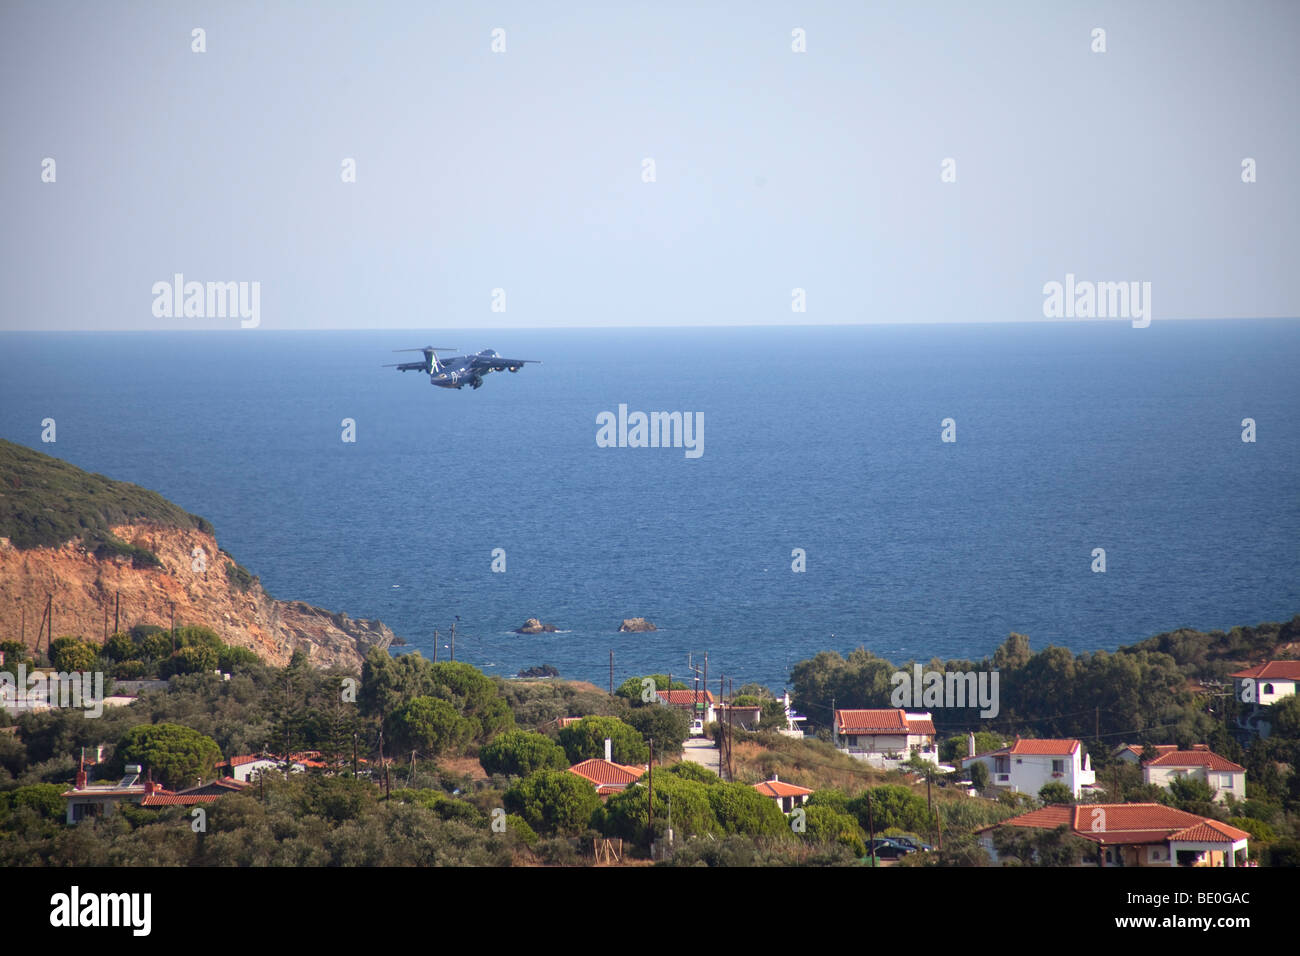 airplane takeoff in airport of Skiathos island,Greece - Stock Image